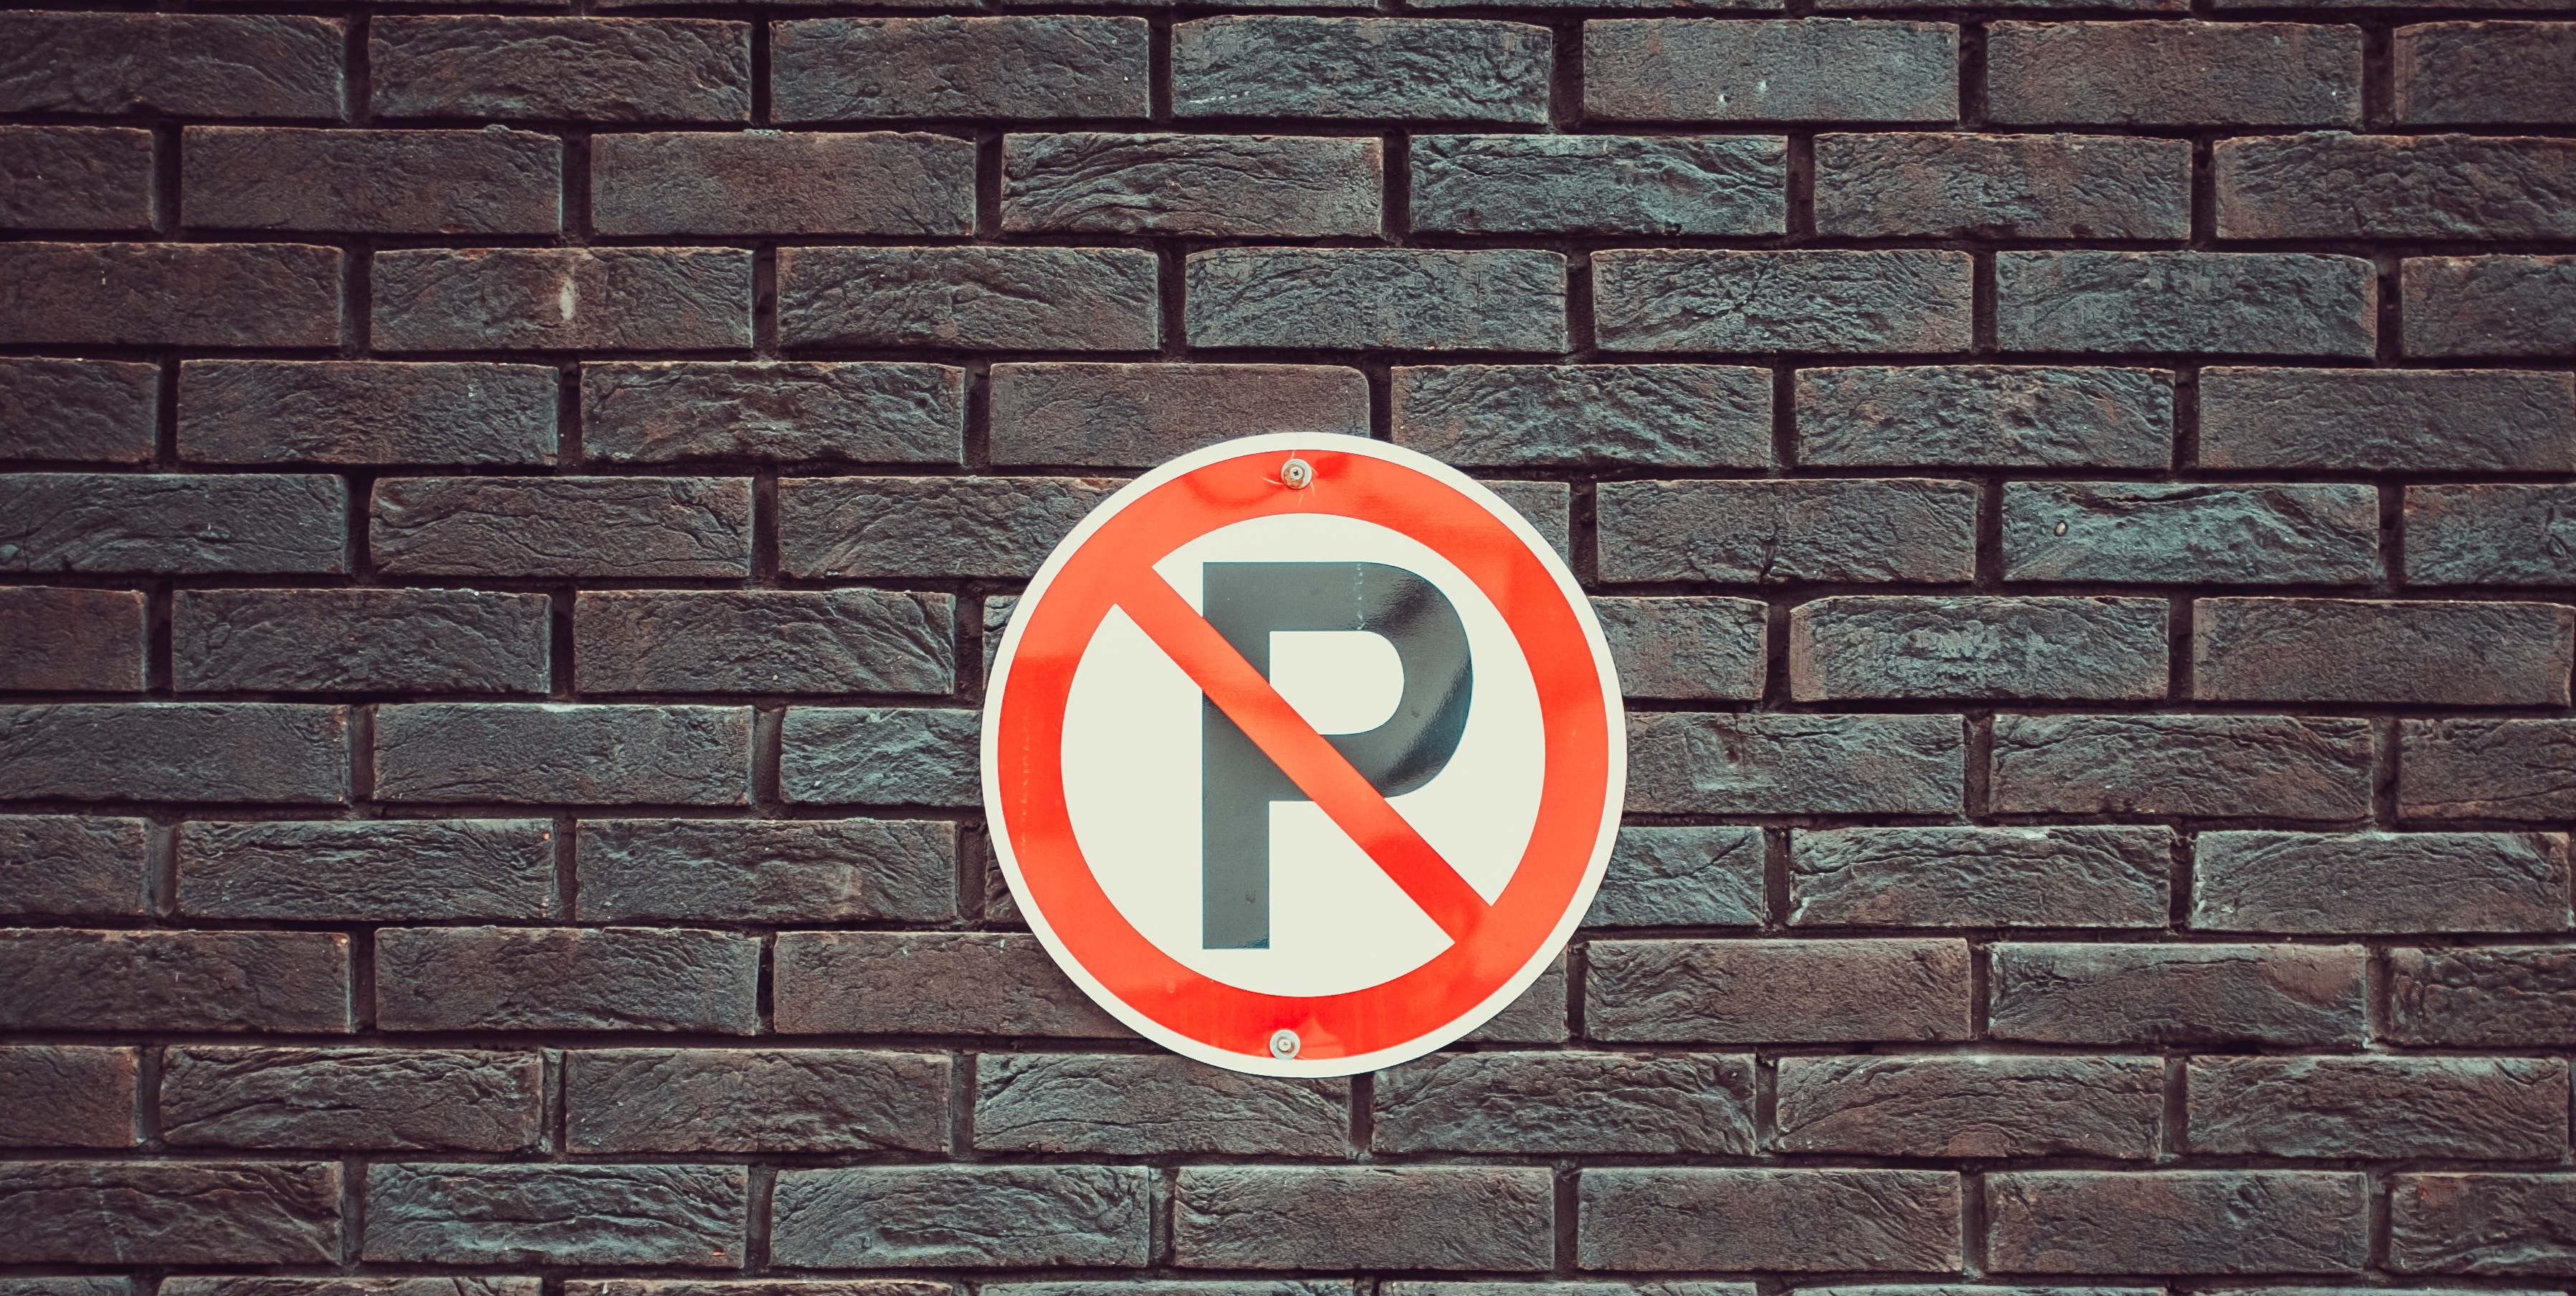 Parking signboard on a wall